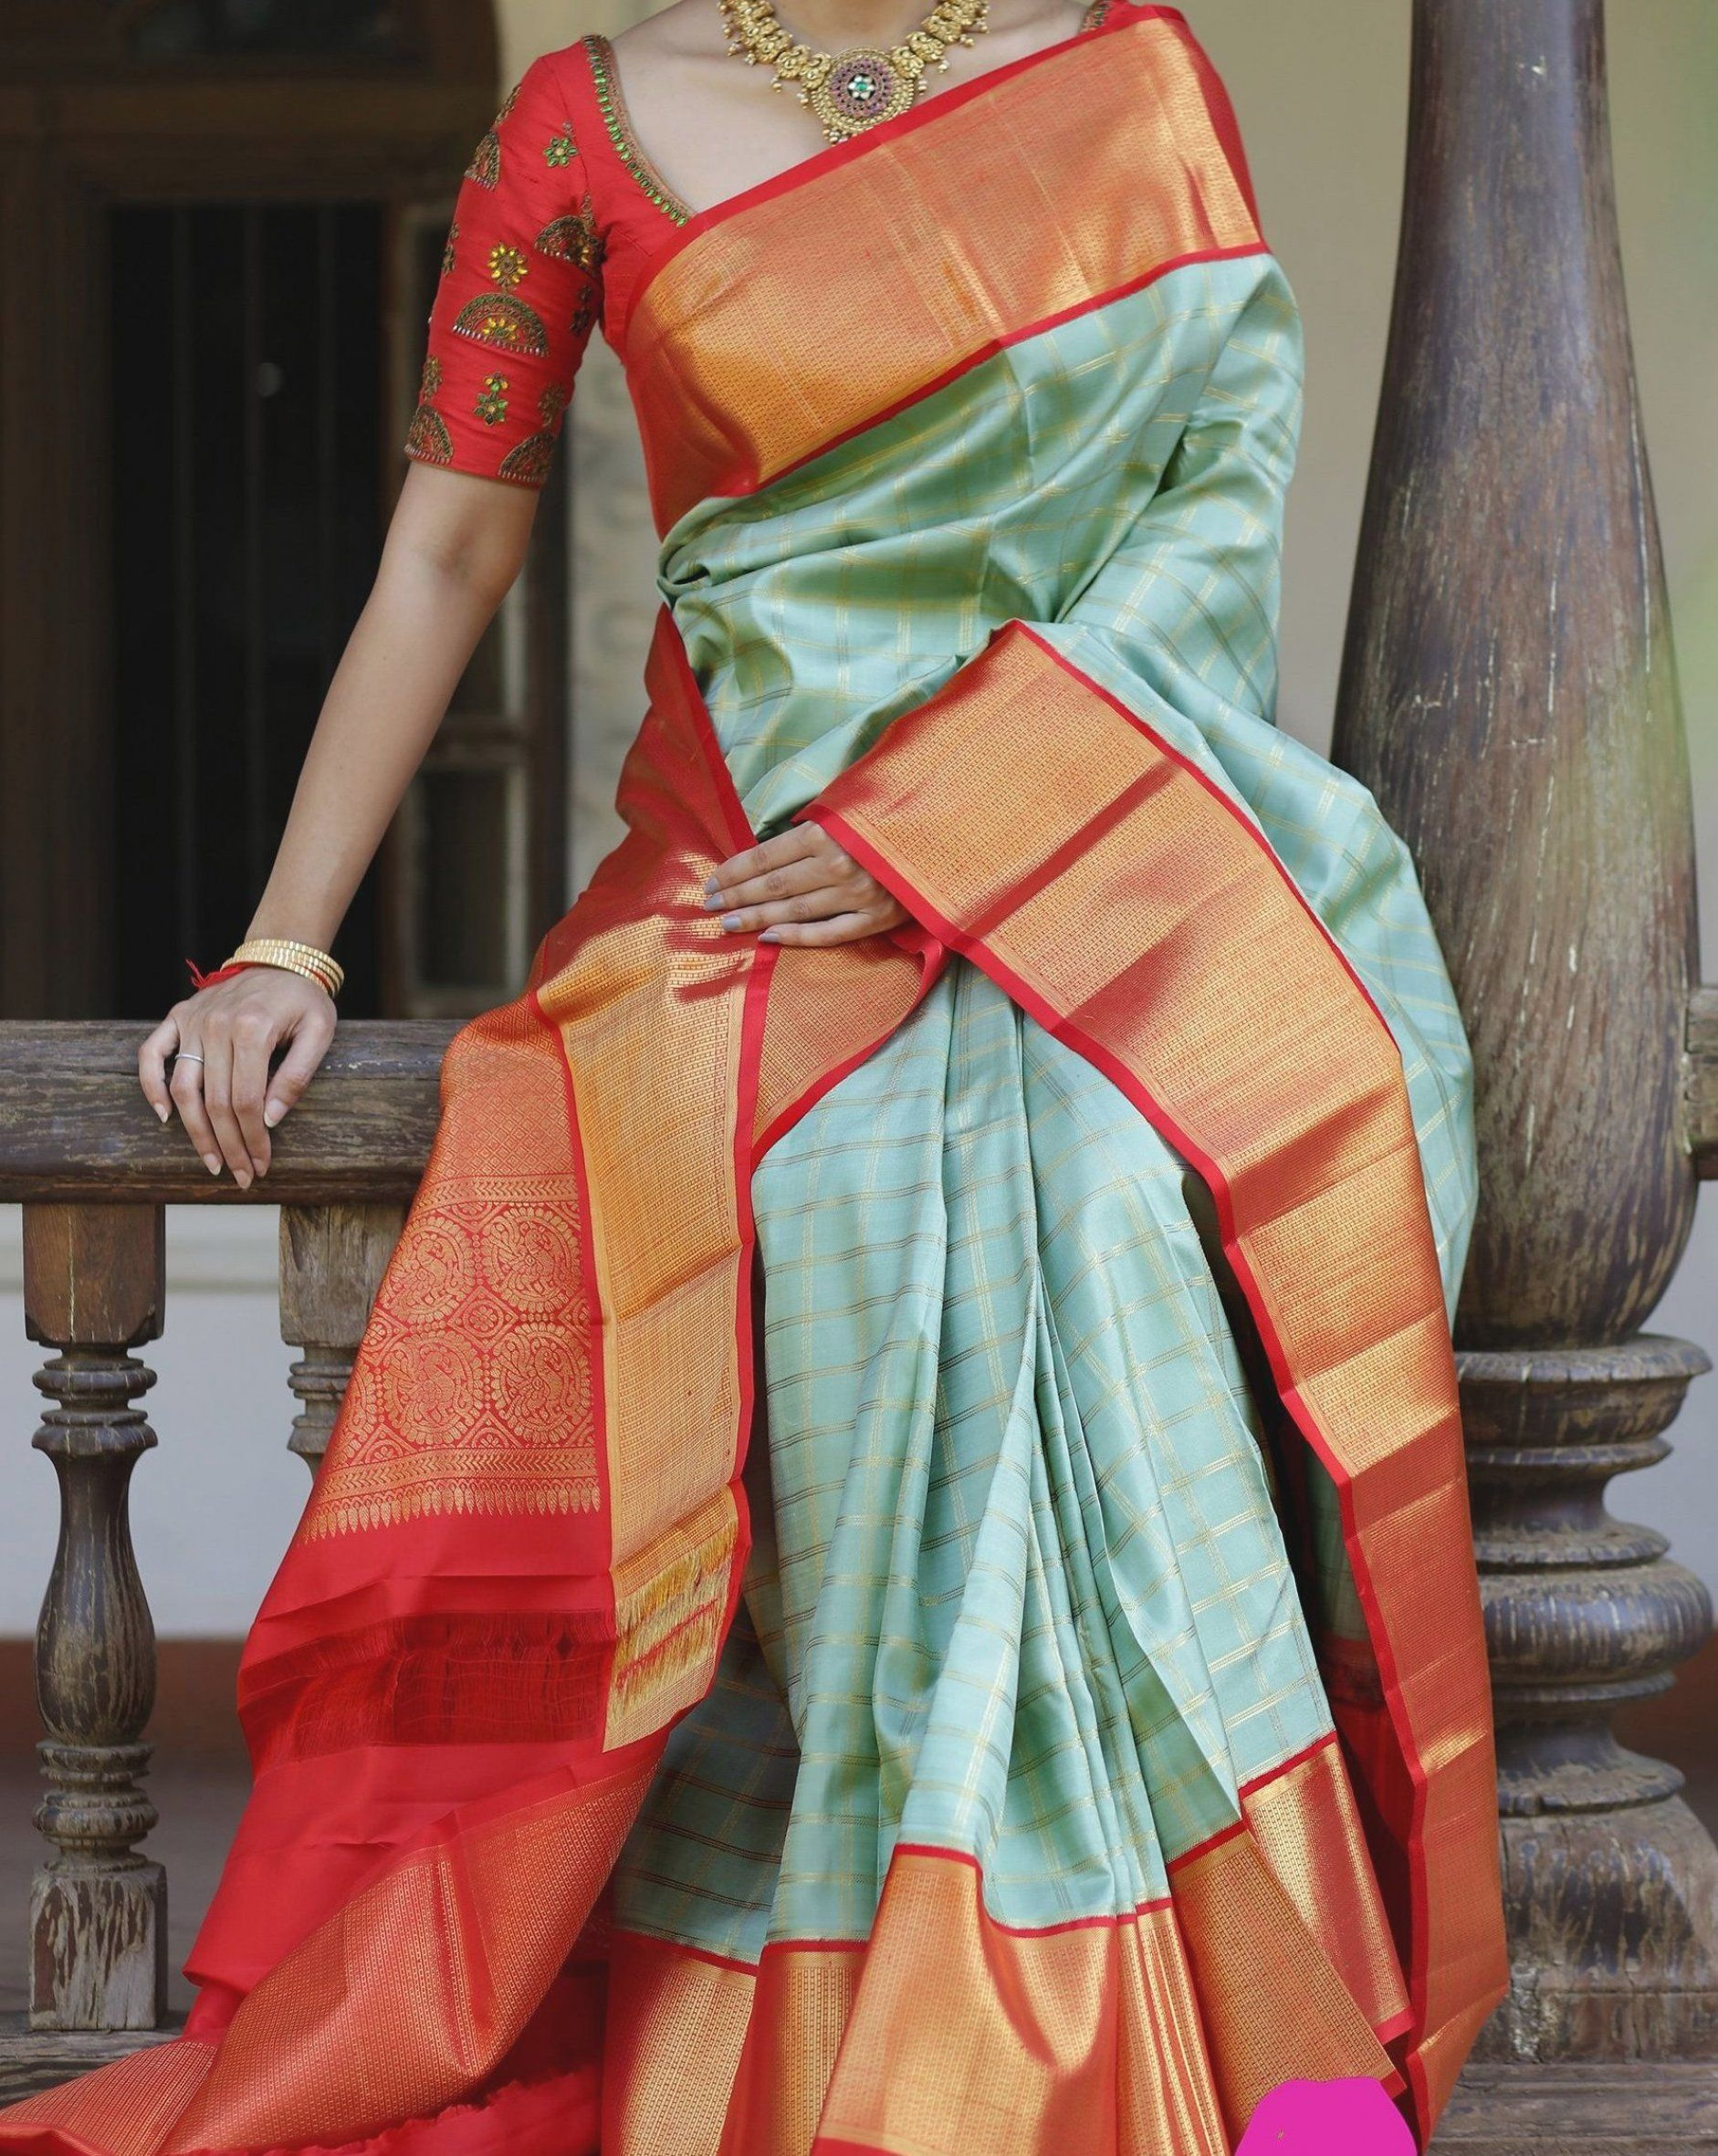 Kanjivaram silk saree in pista green  handwoven with gold zari kattam patterns all over  completed with a beautiful red border in intricate weaving  and a heavily woven pallu in red with gold zari patterns  Blouse  Red silk with coordinated borders #silksarees #designersarees #ethnicwear #westernwear #pattusarees #borderworksarees #jutefinishsarees #zariworksarees #utsavasarees #festivalsarees #occasionwear #fashion #traditional #handwoven #bridalsaree #boutique #shopping #store #buysareesonline